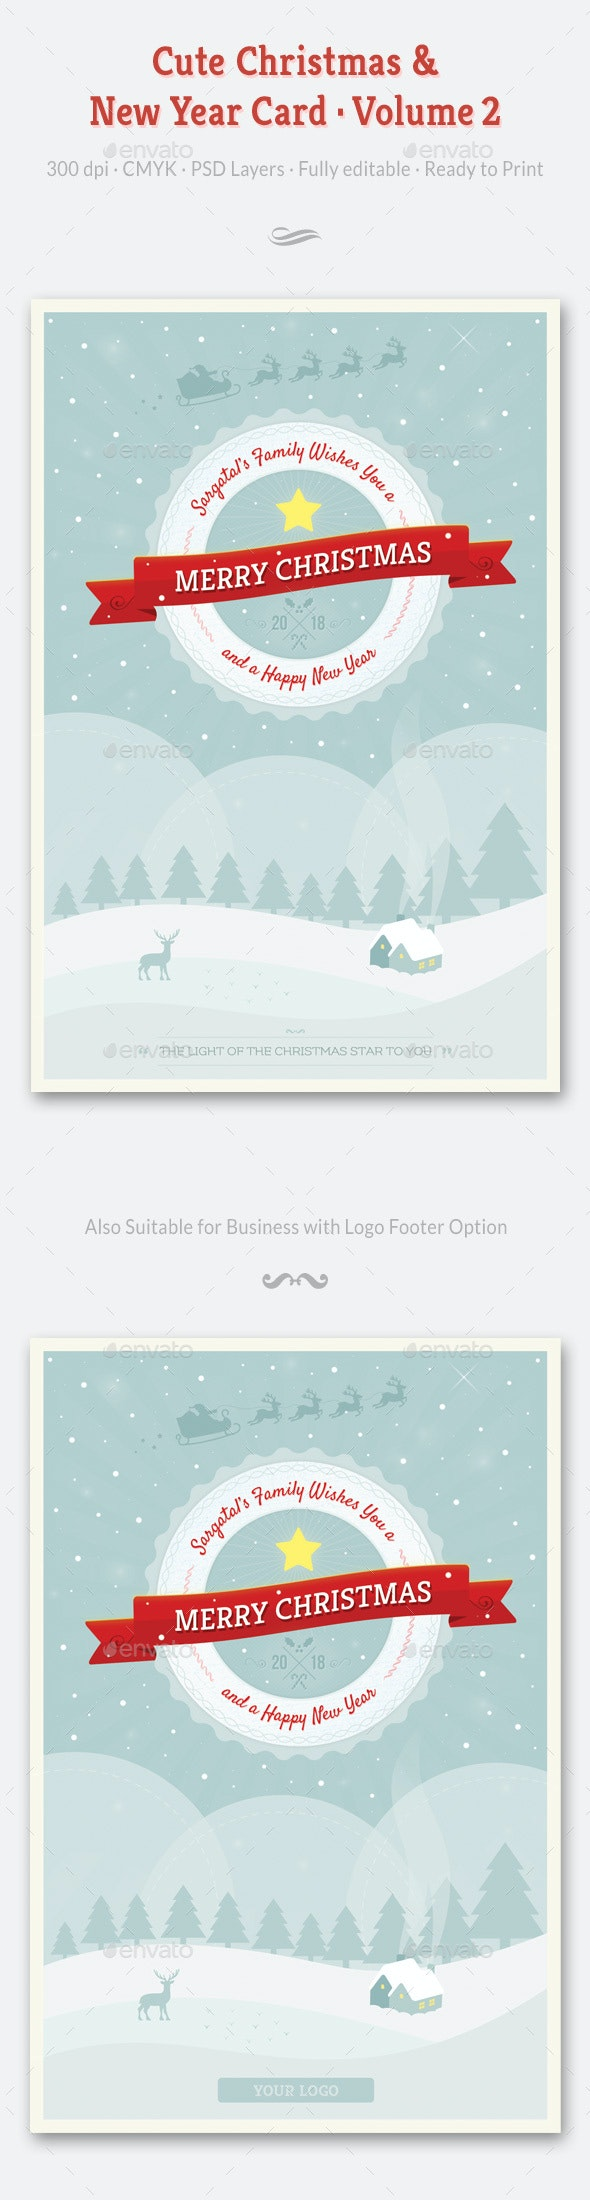 Cute Christmas and New Year Card - Volume 02 - Holiday Greeting Cards